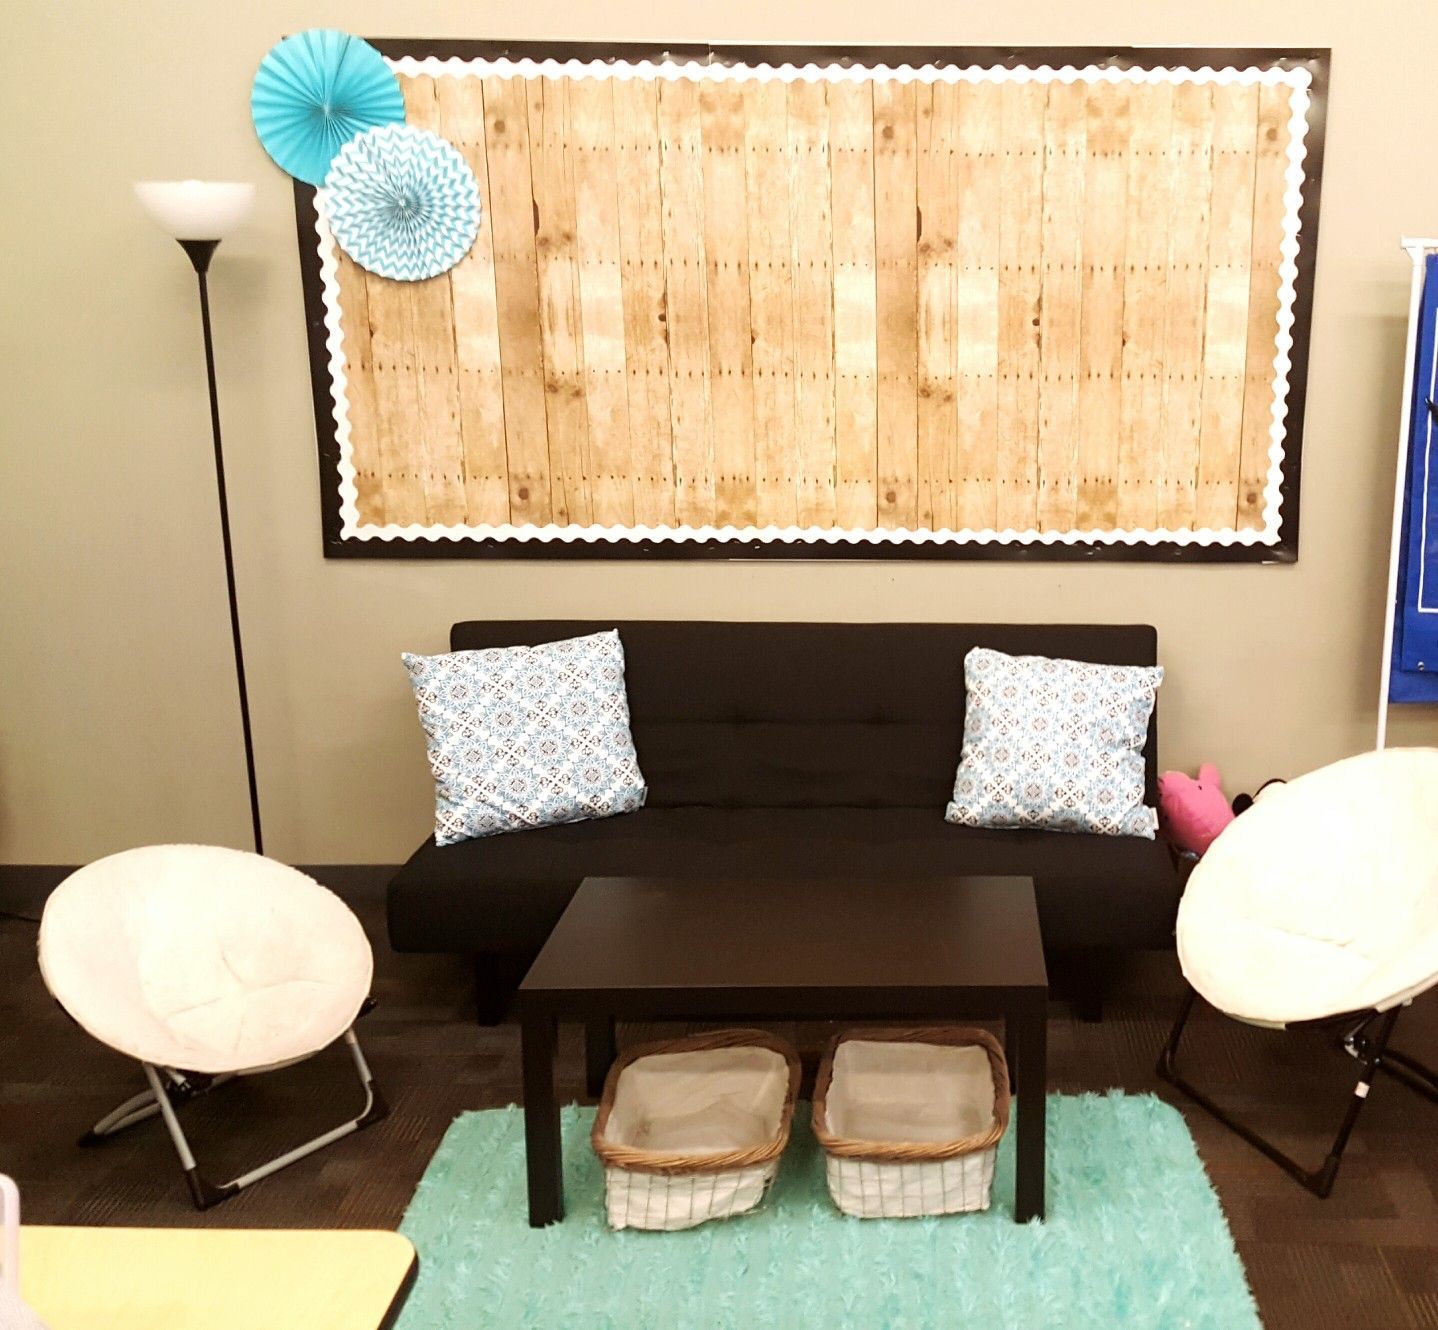 Flexible Seating Or Small Group Project Area Students